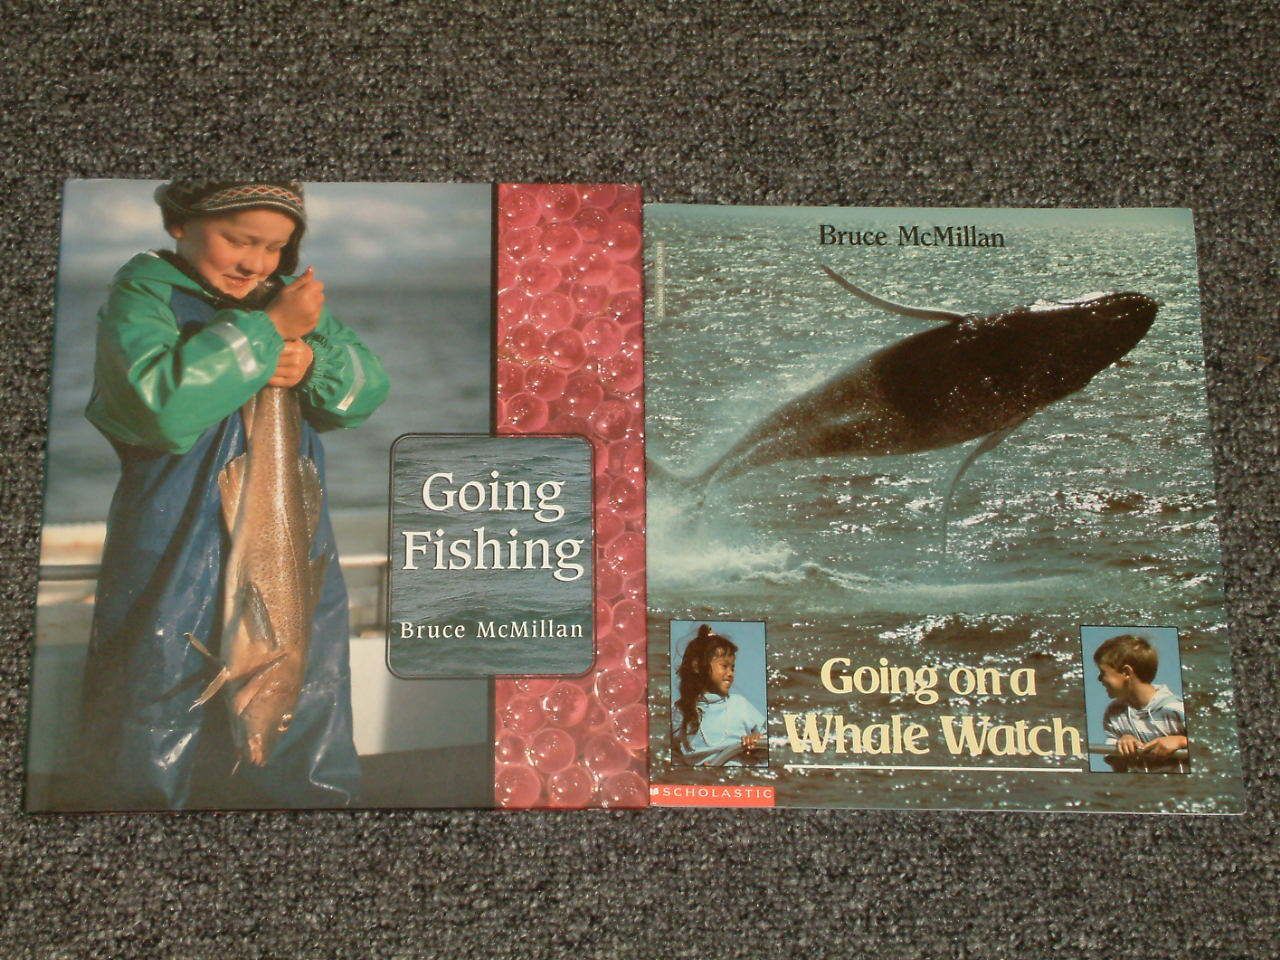 Going Fishing and Going on a Whale Watch by Bruce McMillan